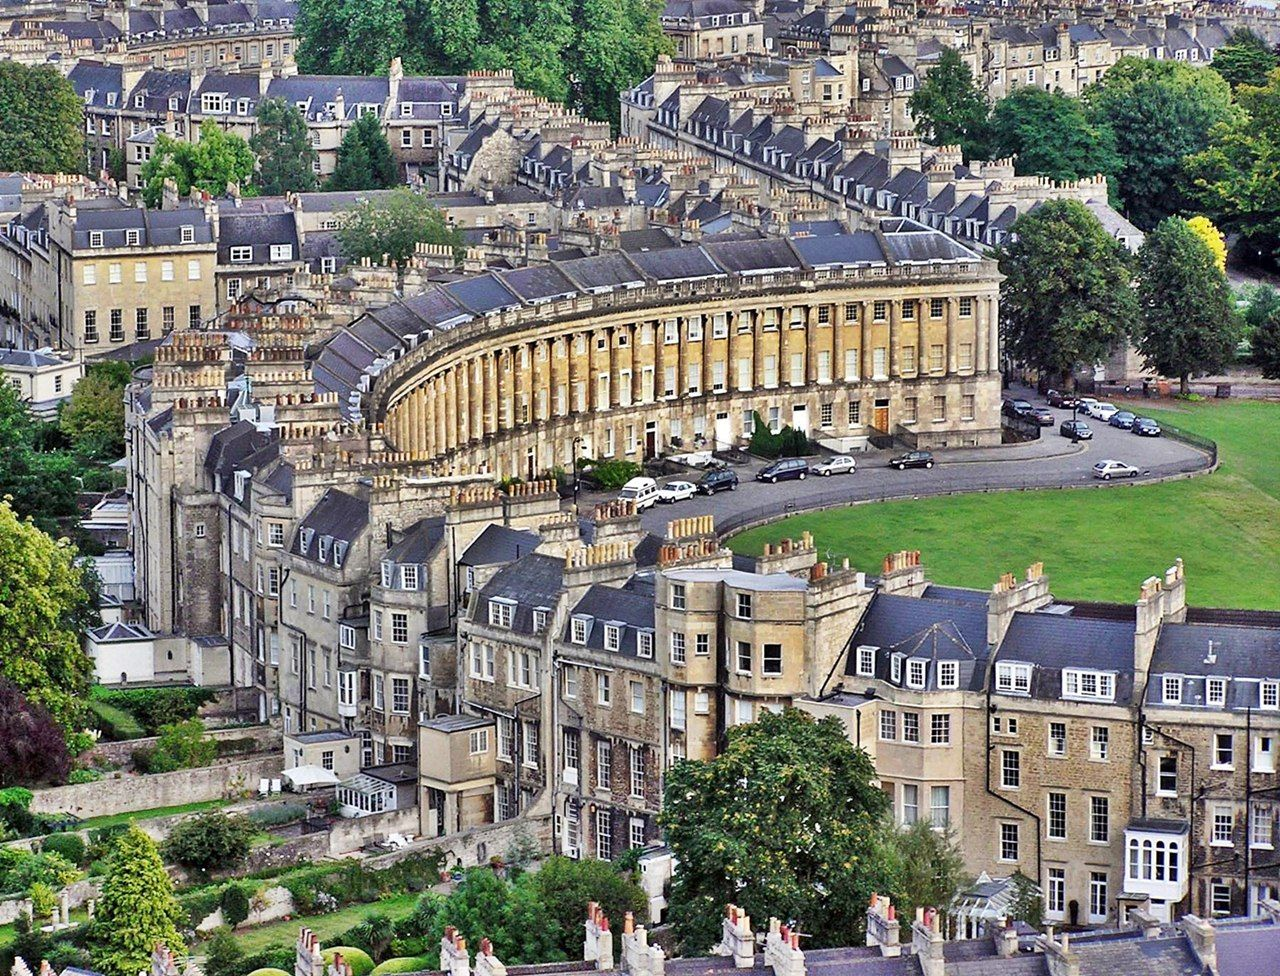 Merveilleux Visit Bath, England And One Of Its Main Attractions The Royal Crescent  Credit To Http